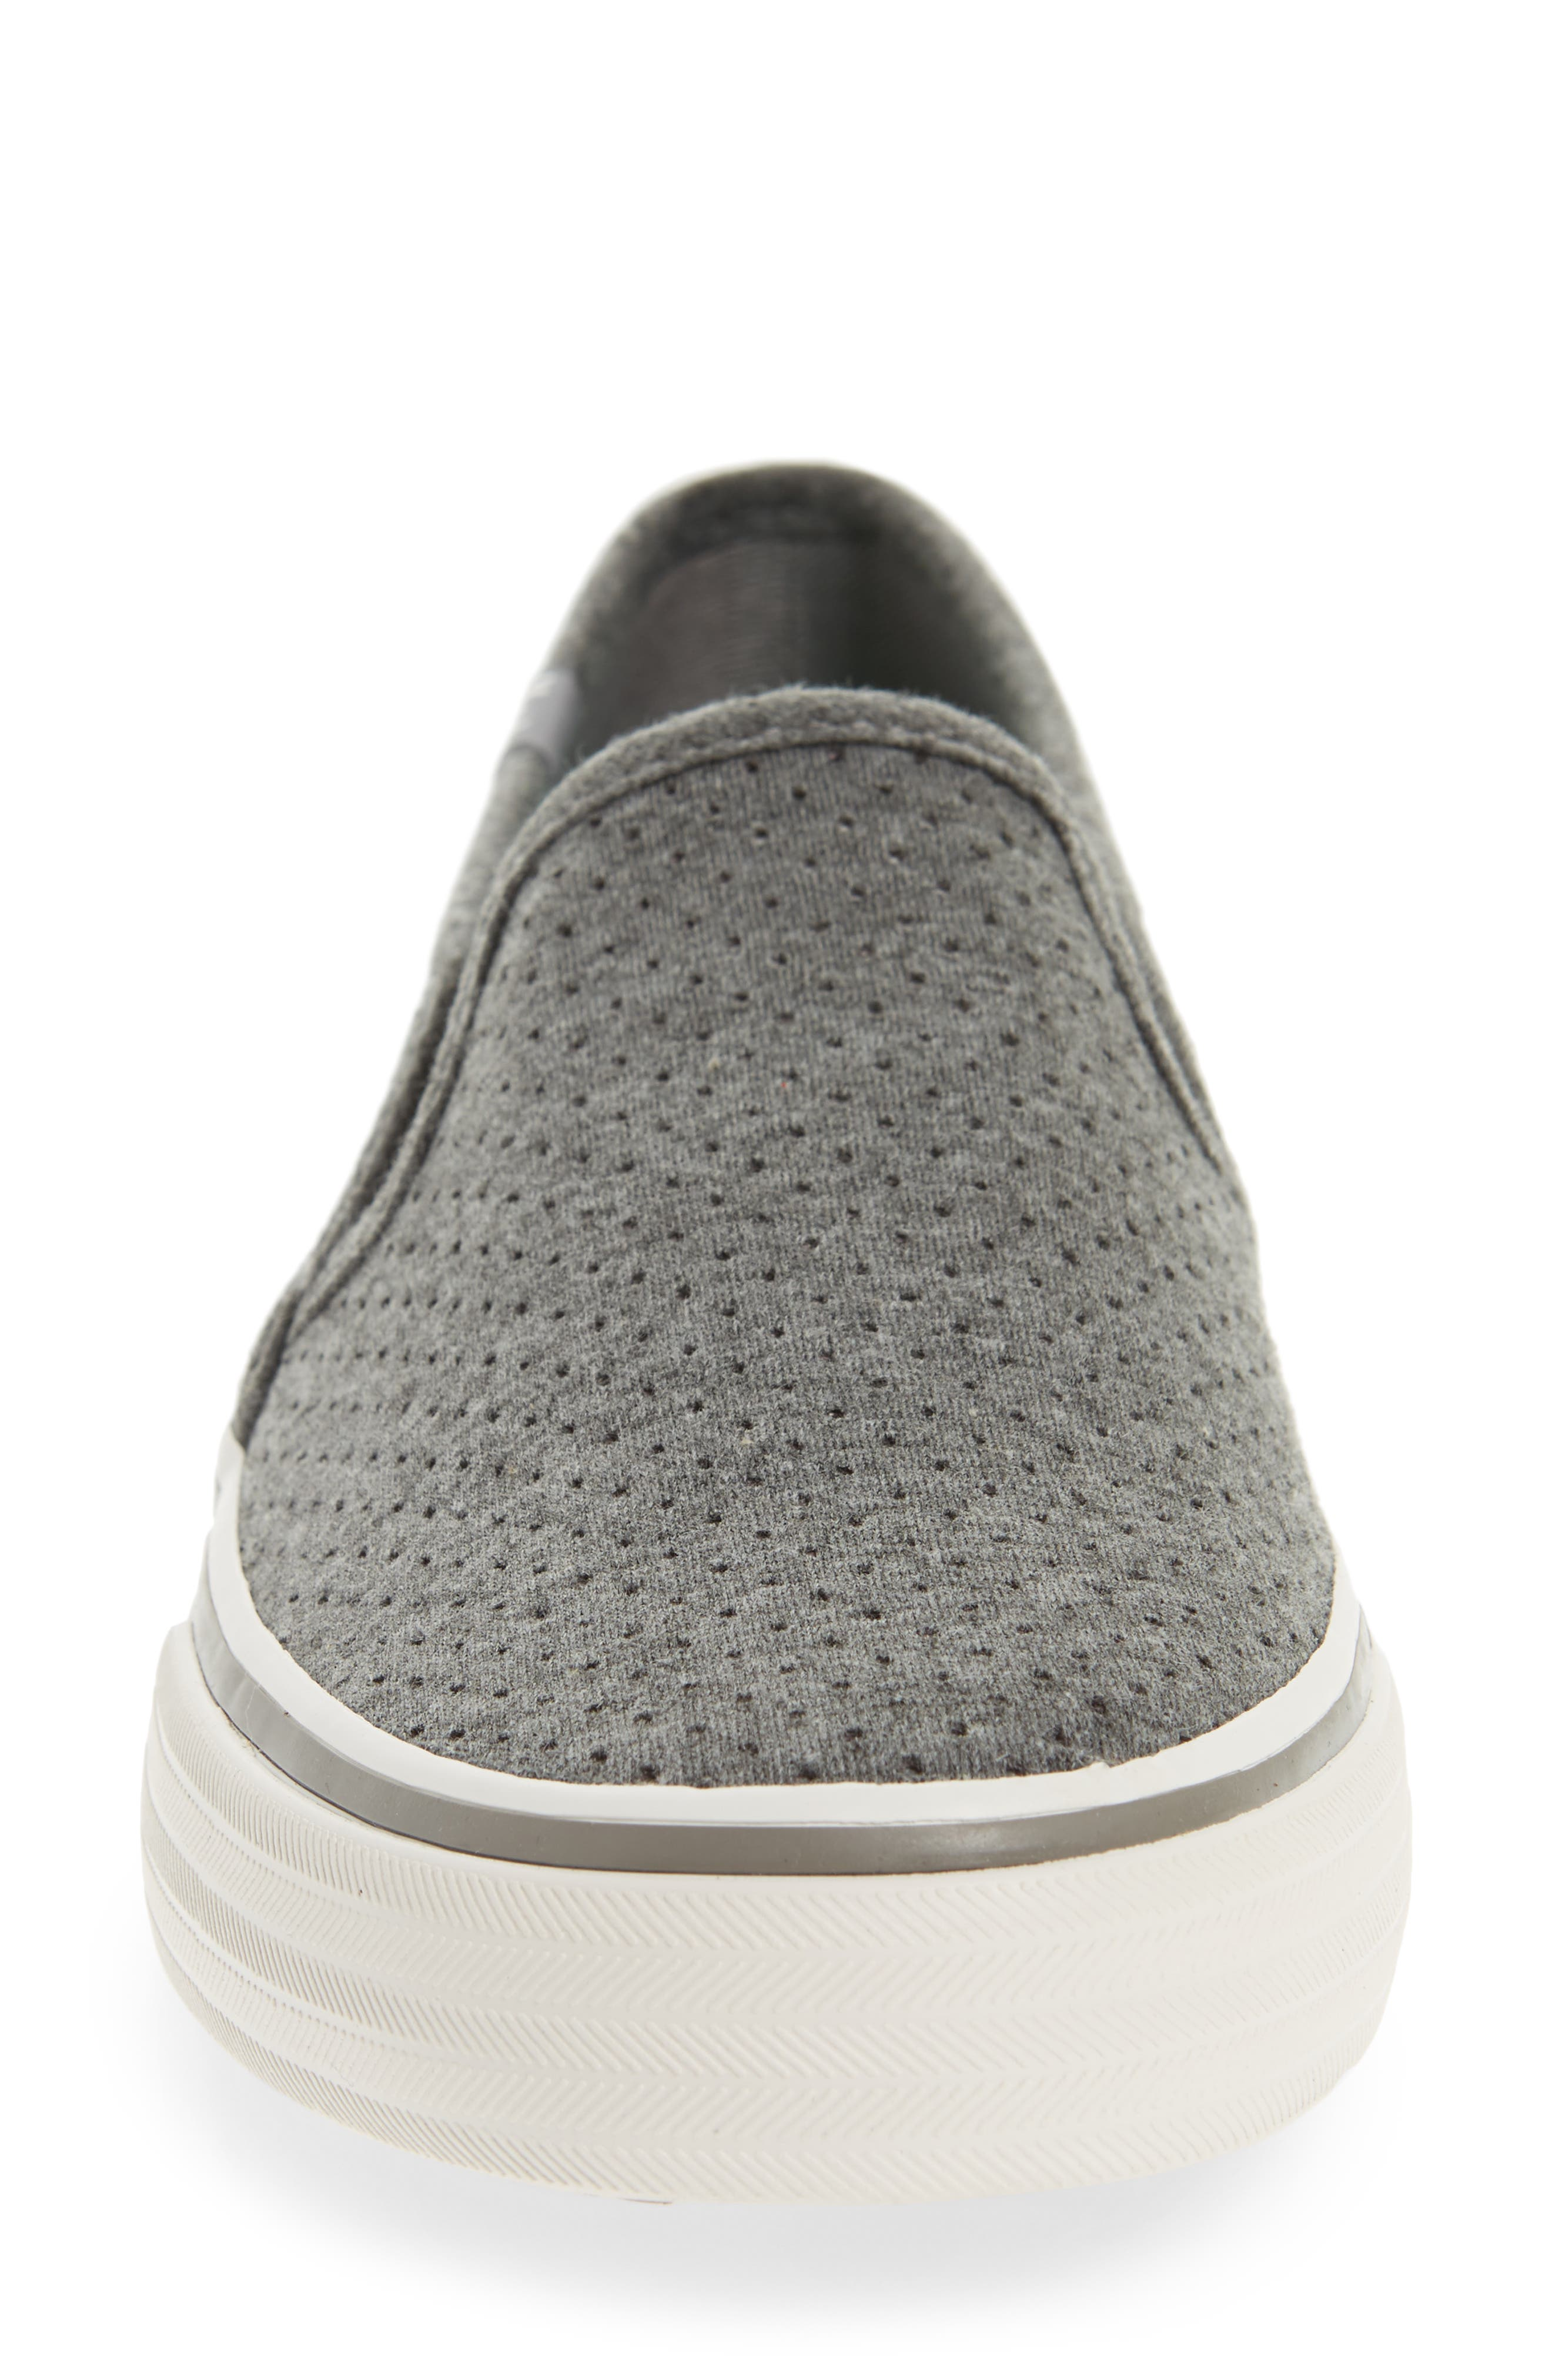 Double Decker Perforated Slip-On Sneaker,                             Alternate thumbnail 4, color,                             Charcoal